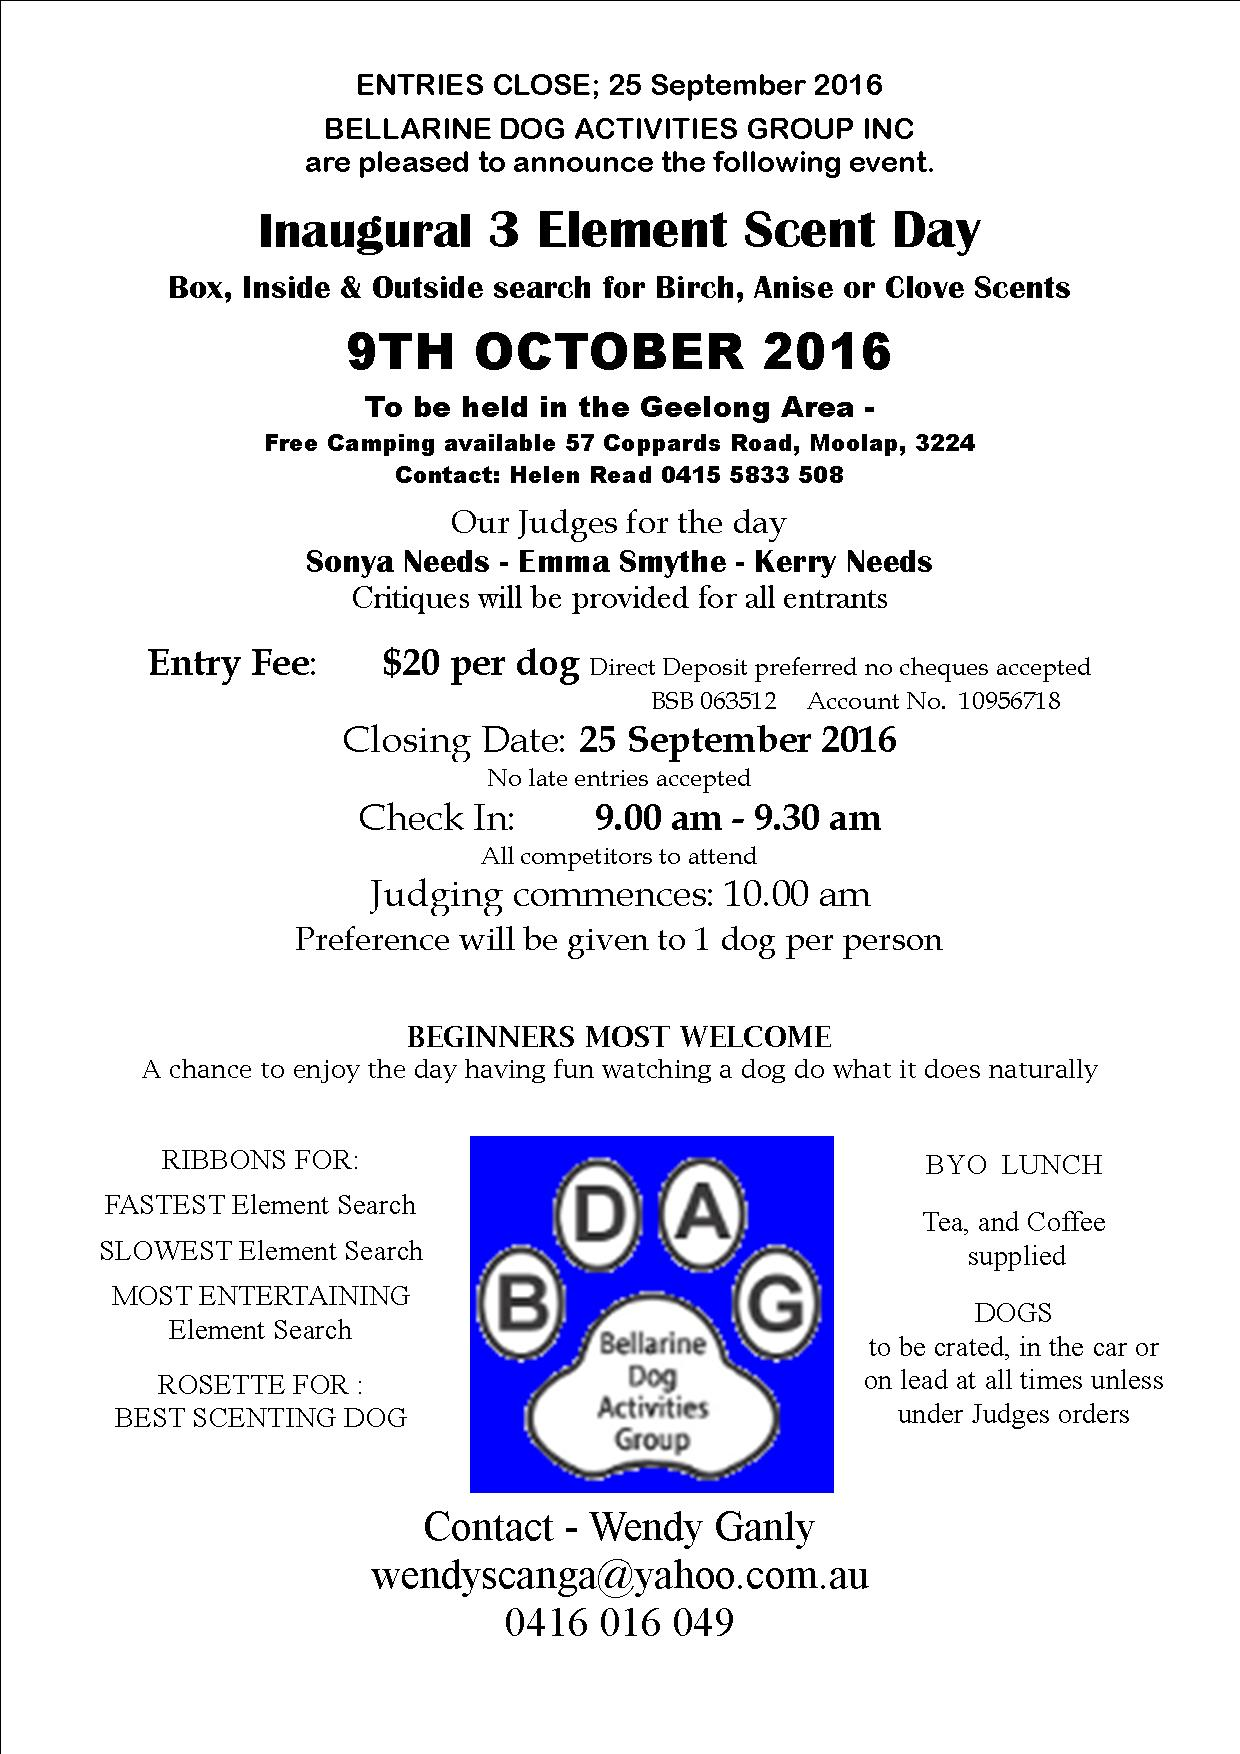 Inagural 3 Element Scent Day Geelong area 9th October 2016 from 9am